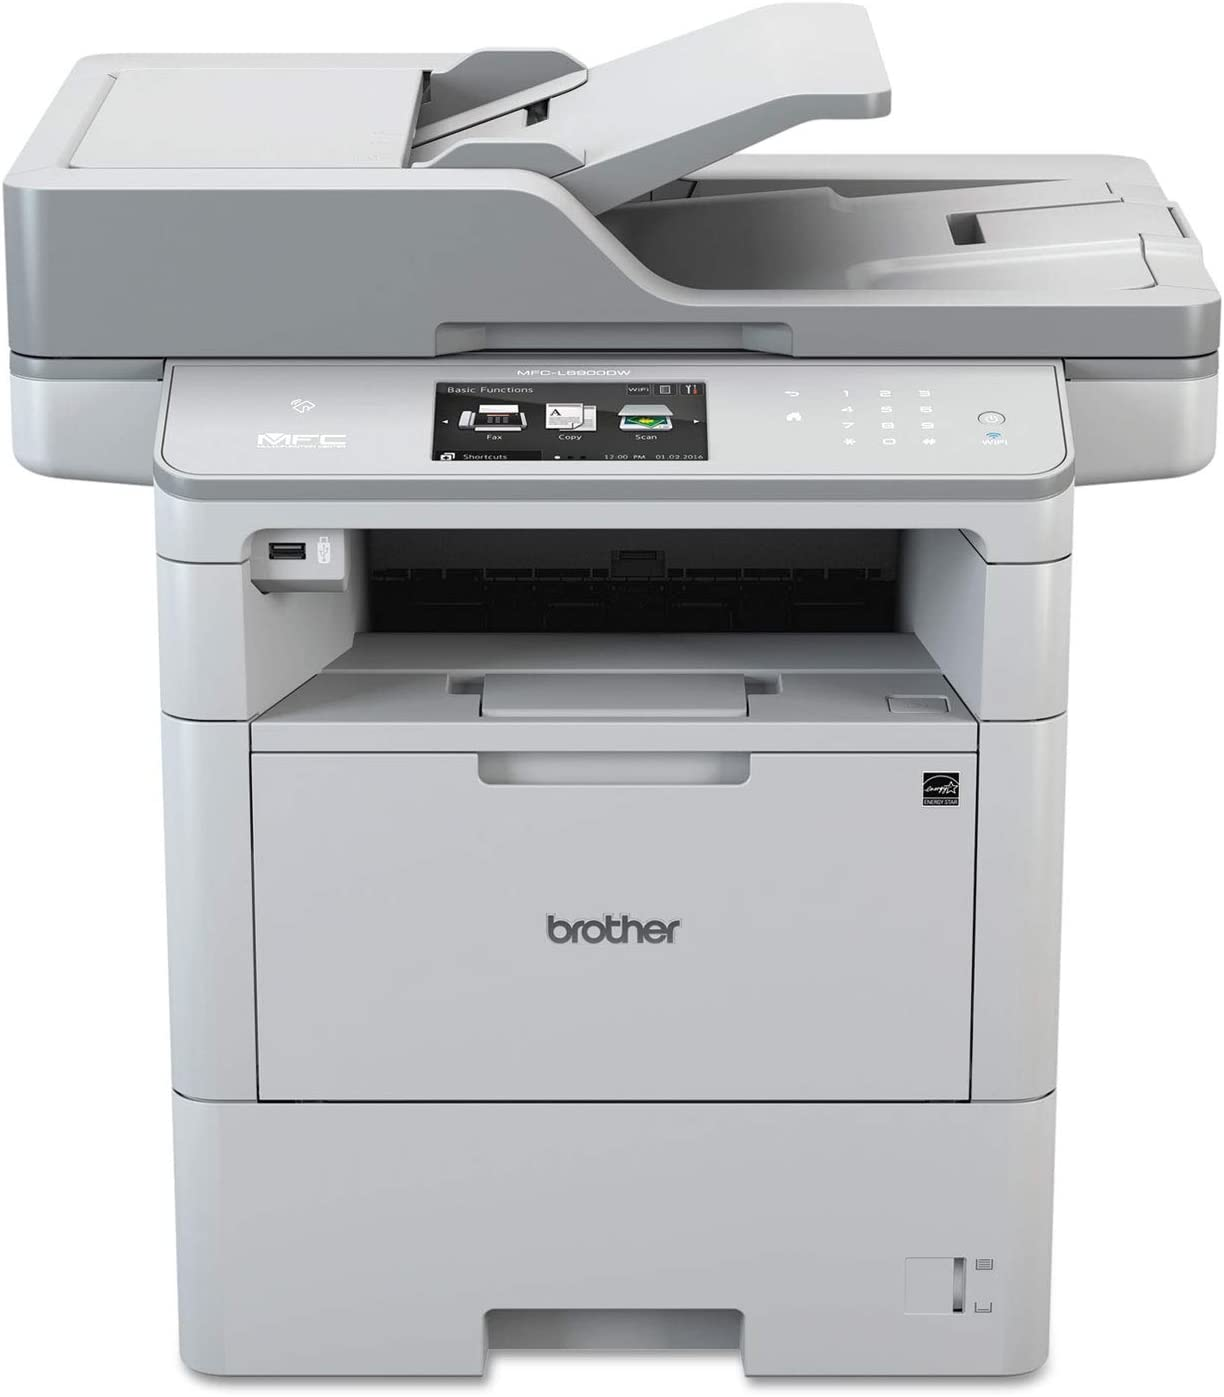 Brother MFCL6900DW Business Laser All-in-One Printer for Mid-Size Workgroups w/Higher Print Volumes